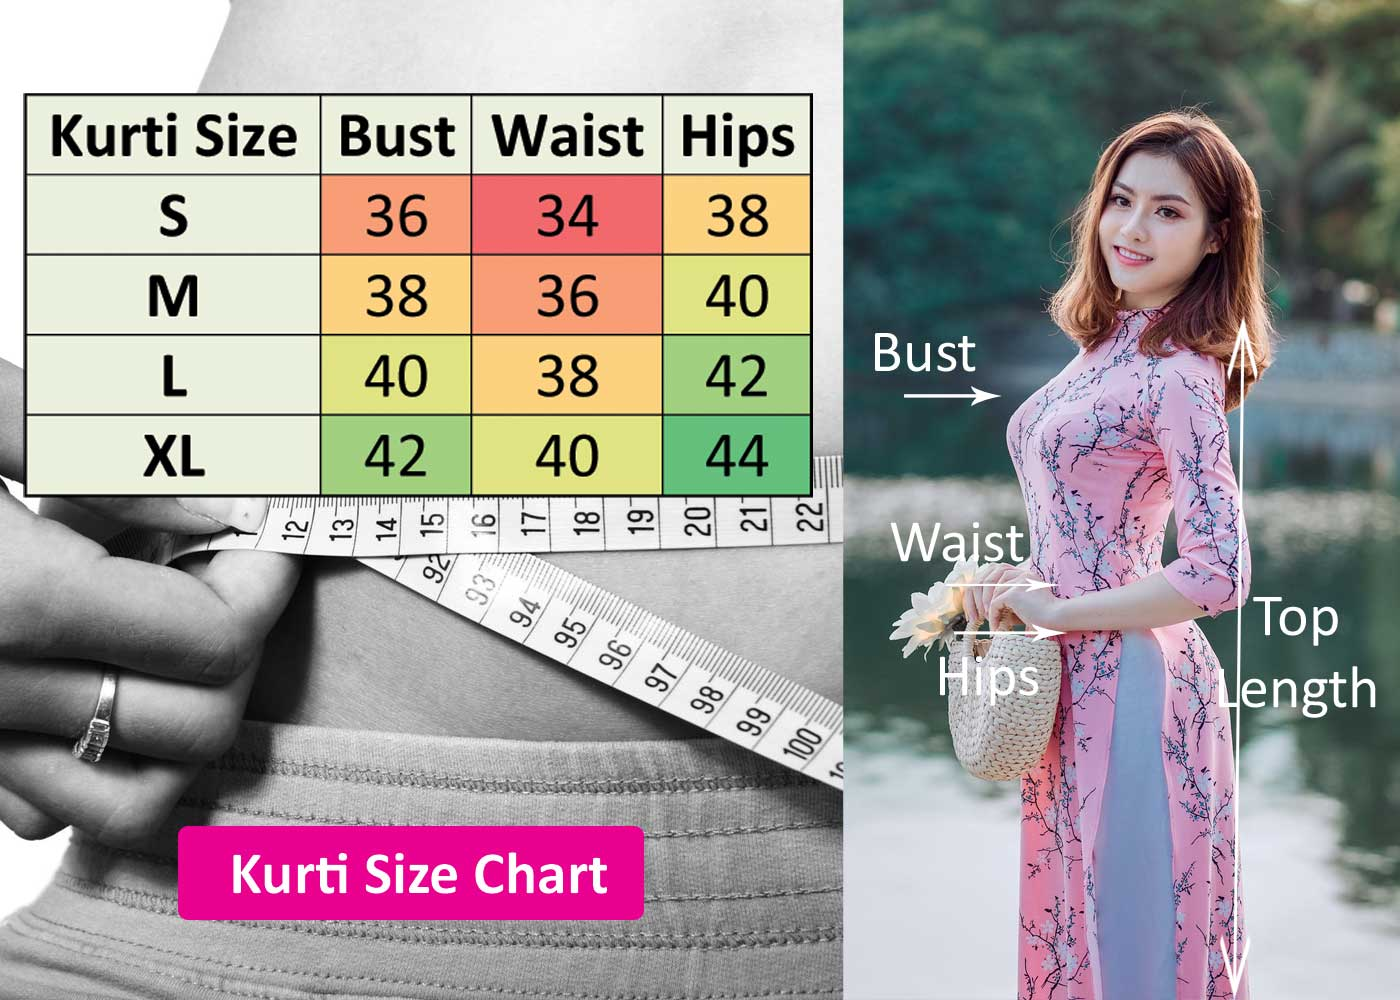 Kurti Size Chart for Online Shopping